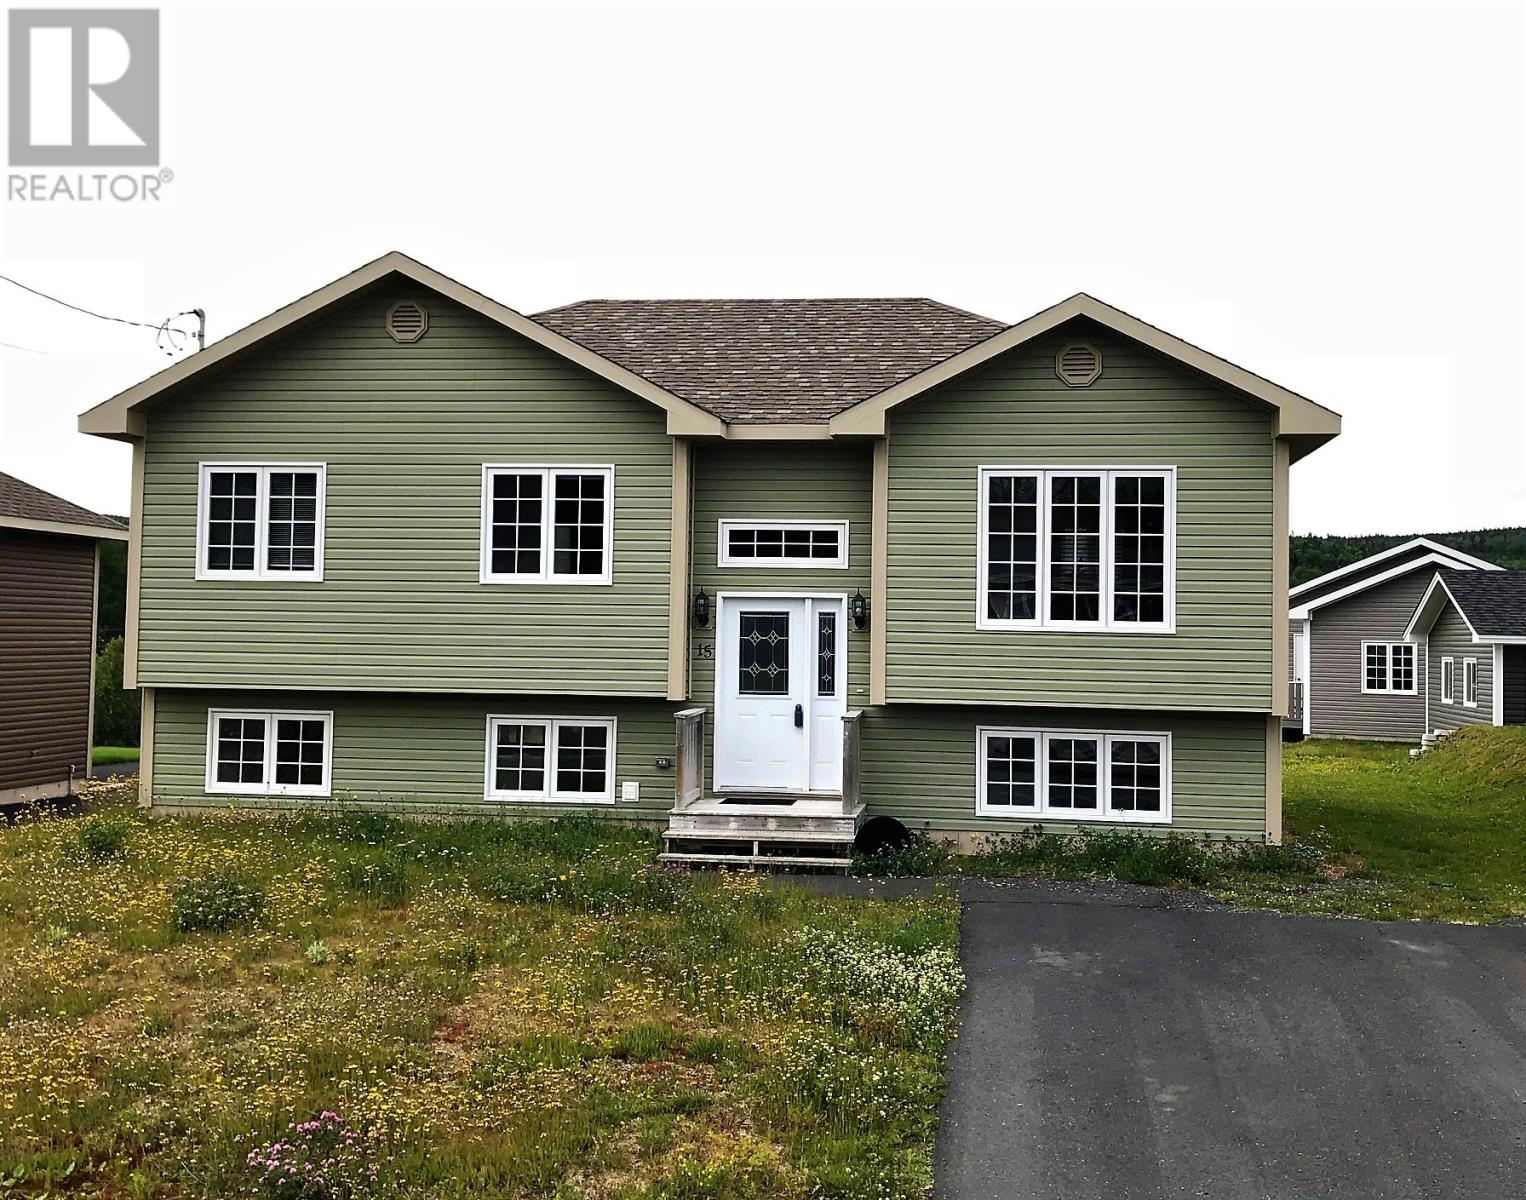 Removed: 15 Brookside Drive, Clarenville, NL - Removed on 2018-11-02 05:54:15